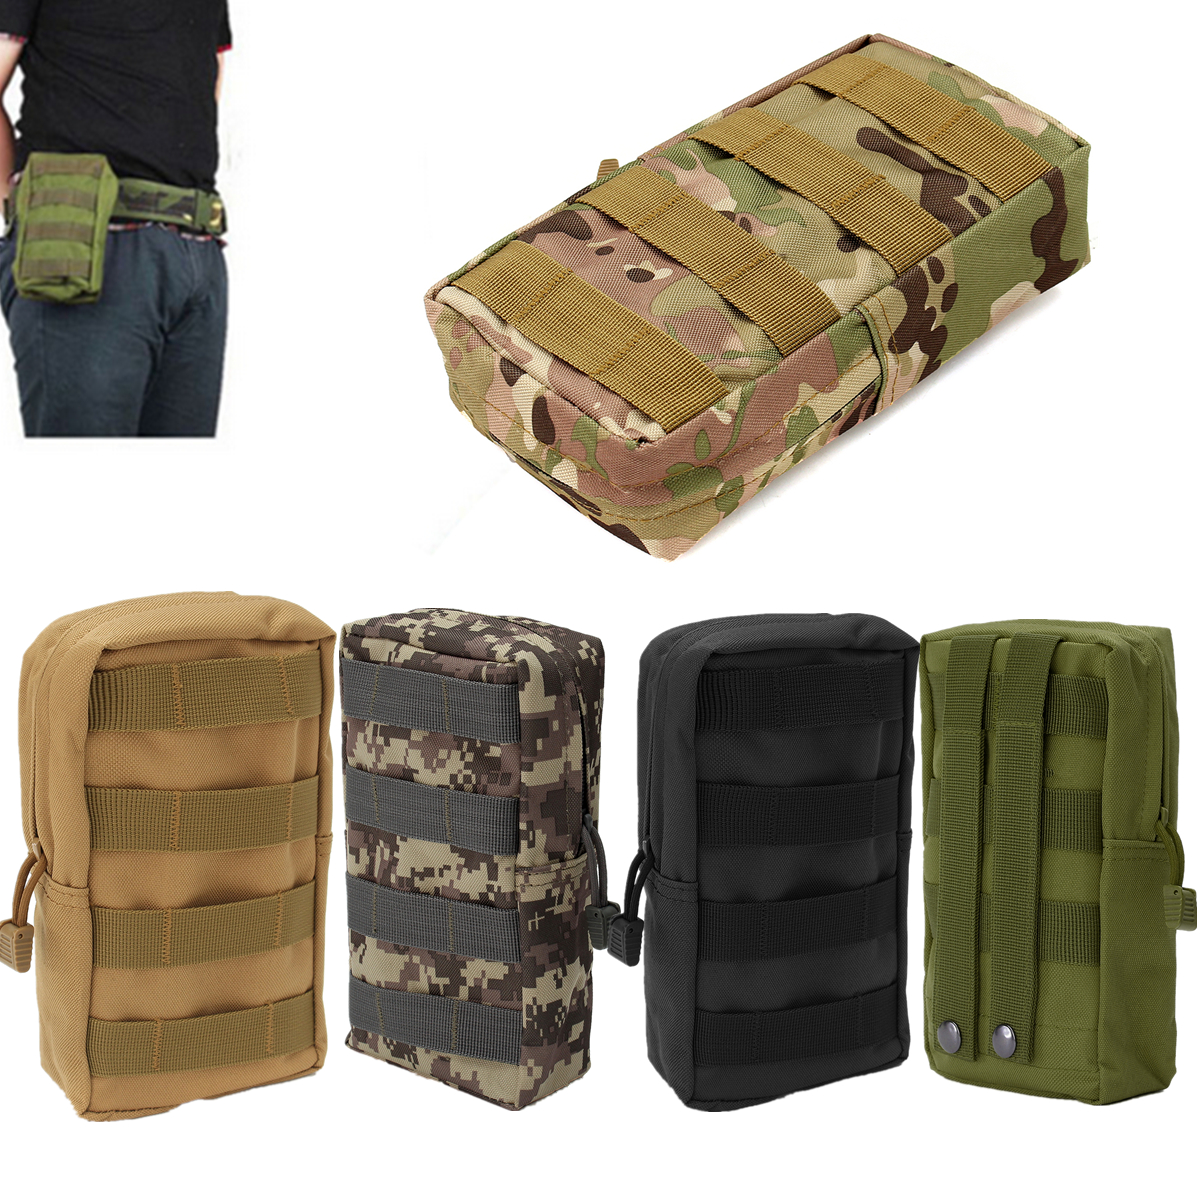 Outdoor Sport Tactical Portable Large Capacity Storage Bag Phone Pouch for Xiaomi iPhone Samsung